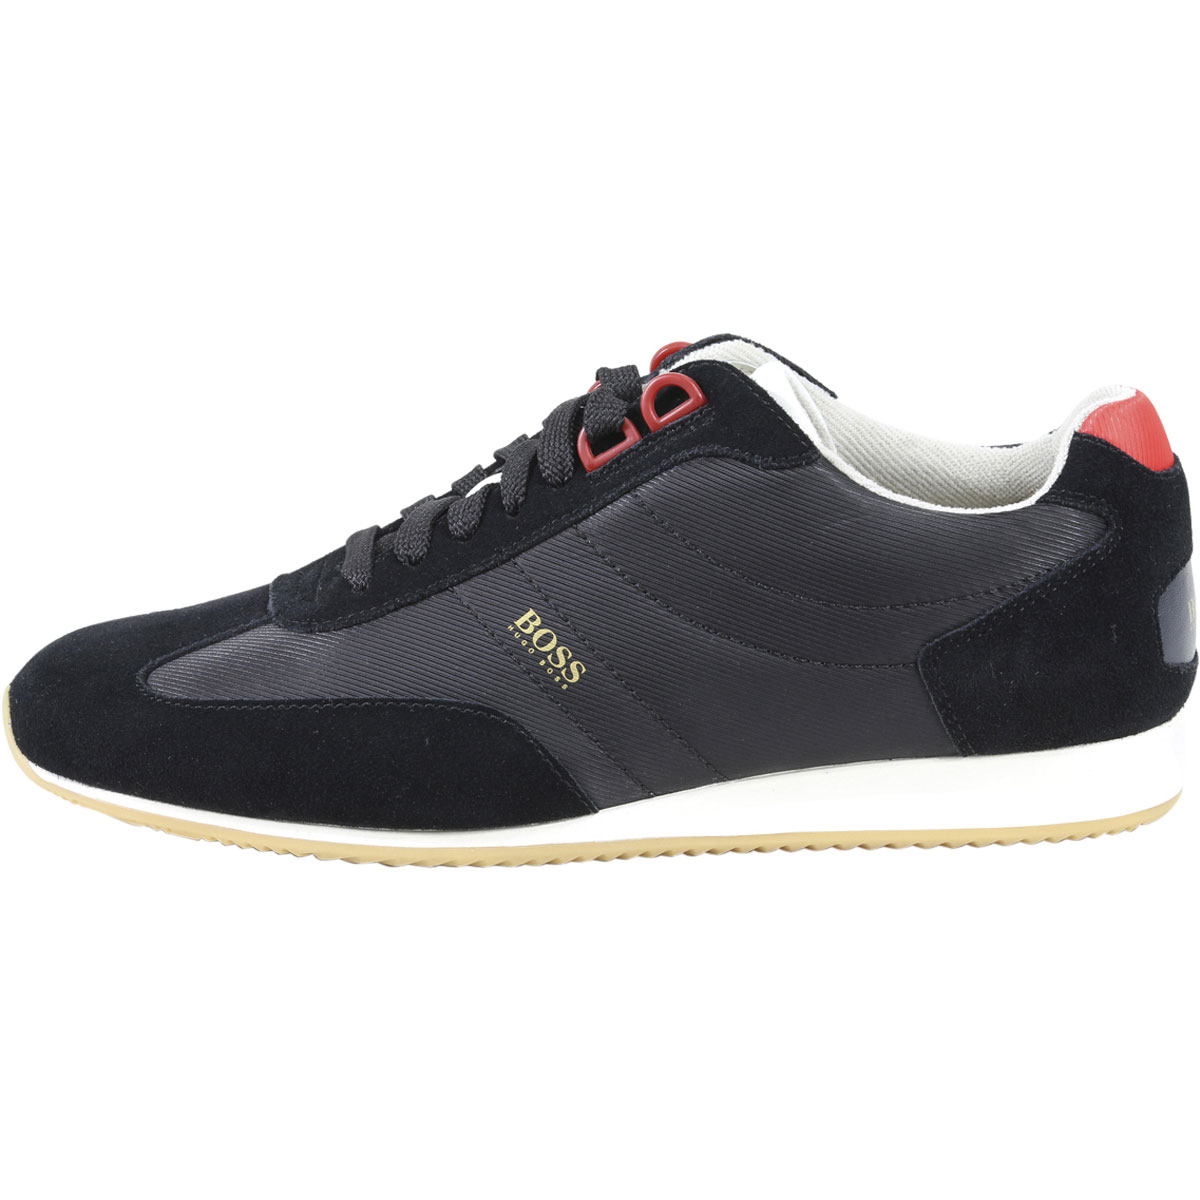 Mens Parkour_Runn_Knit Low-Top Sneakers, Black HUGO BOSS